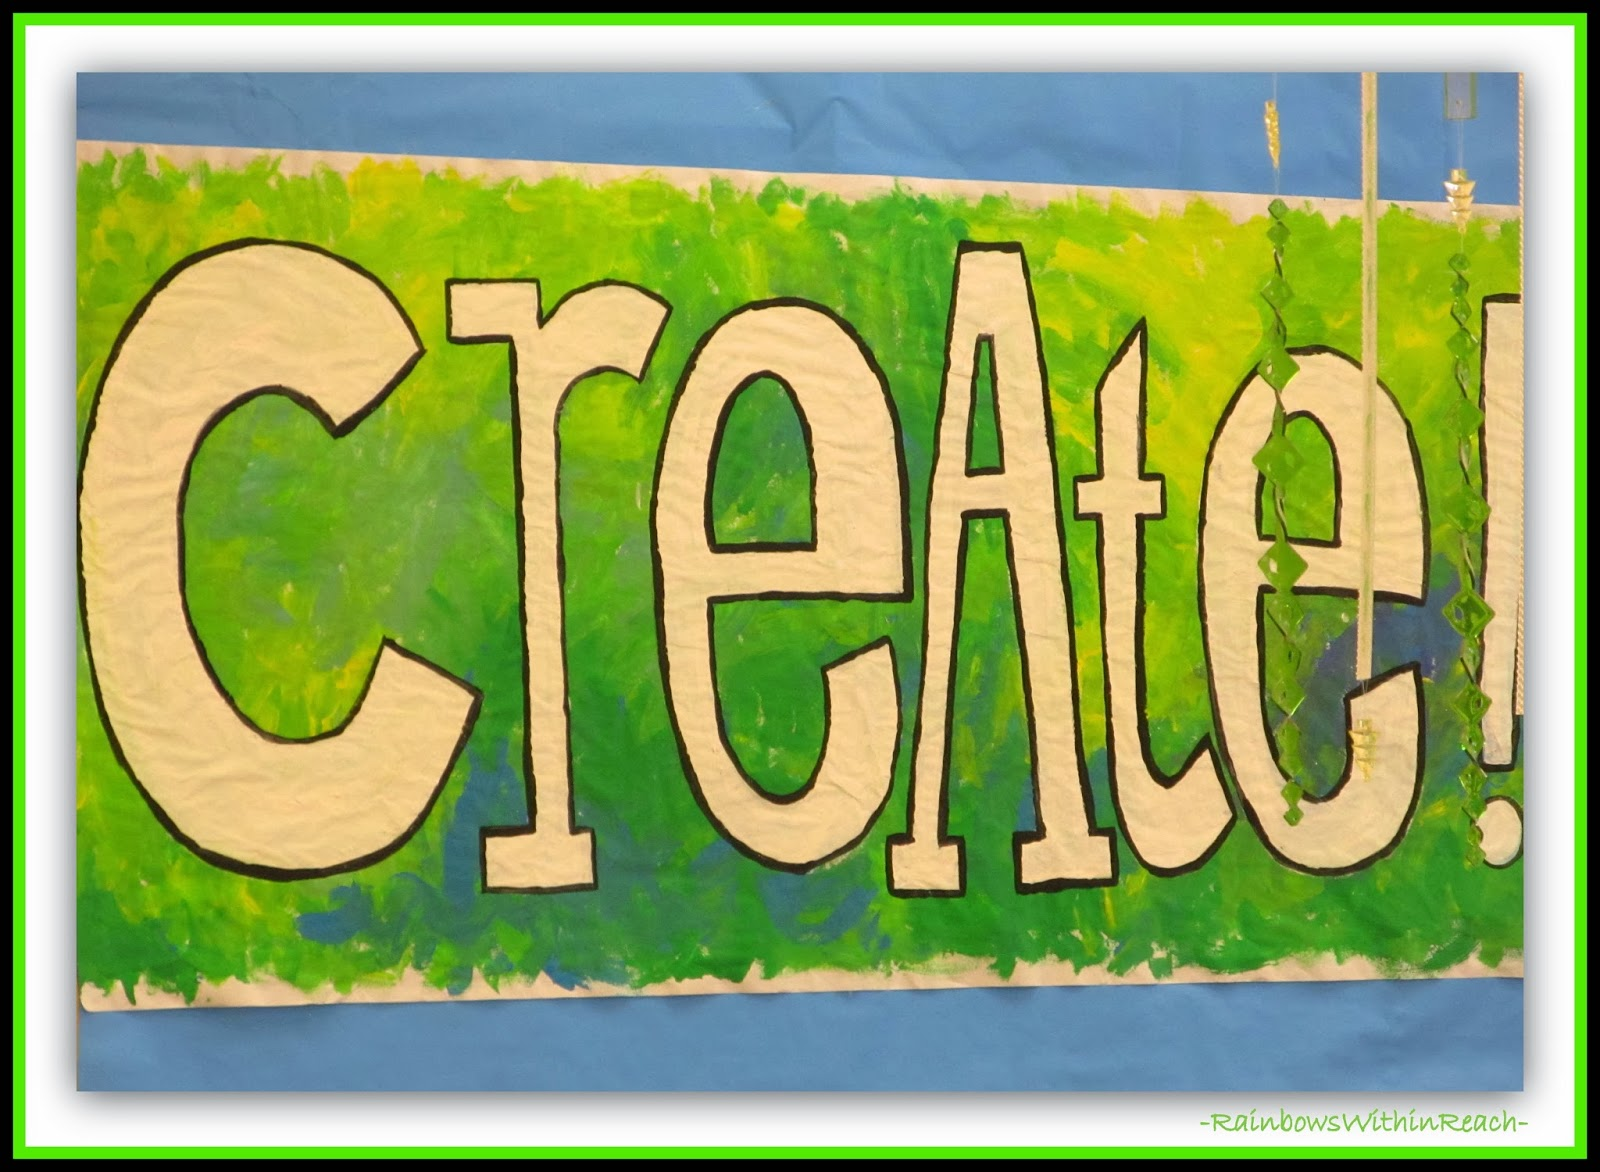 CREATE banner via RainbowsWithinReach